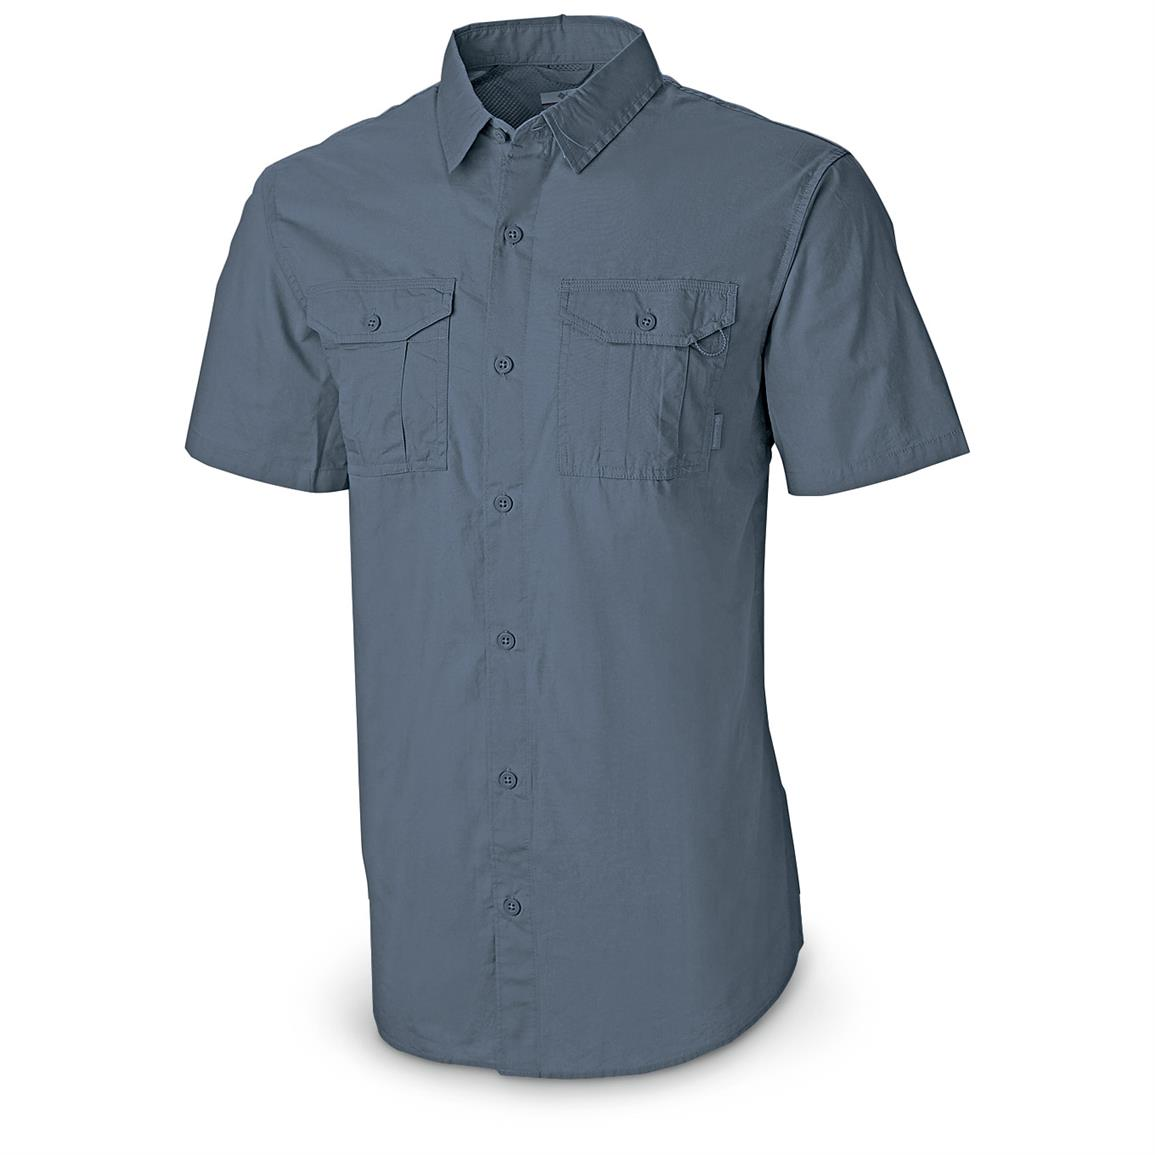 Columbia Men's Pine Park Short-sleeve Cotton Shirt, Steel